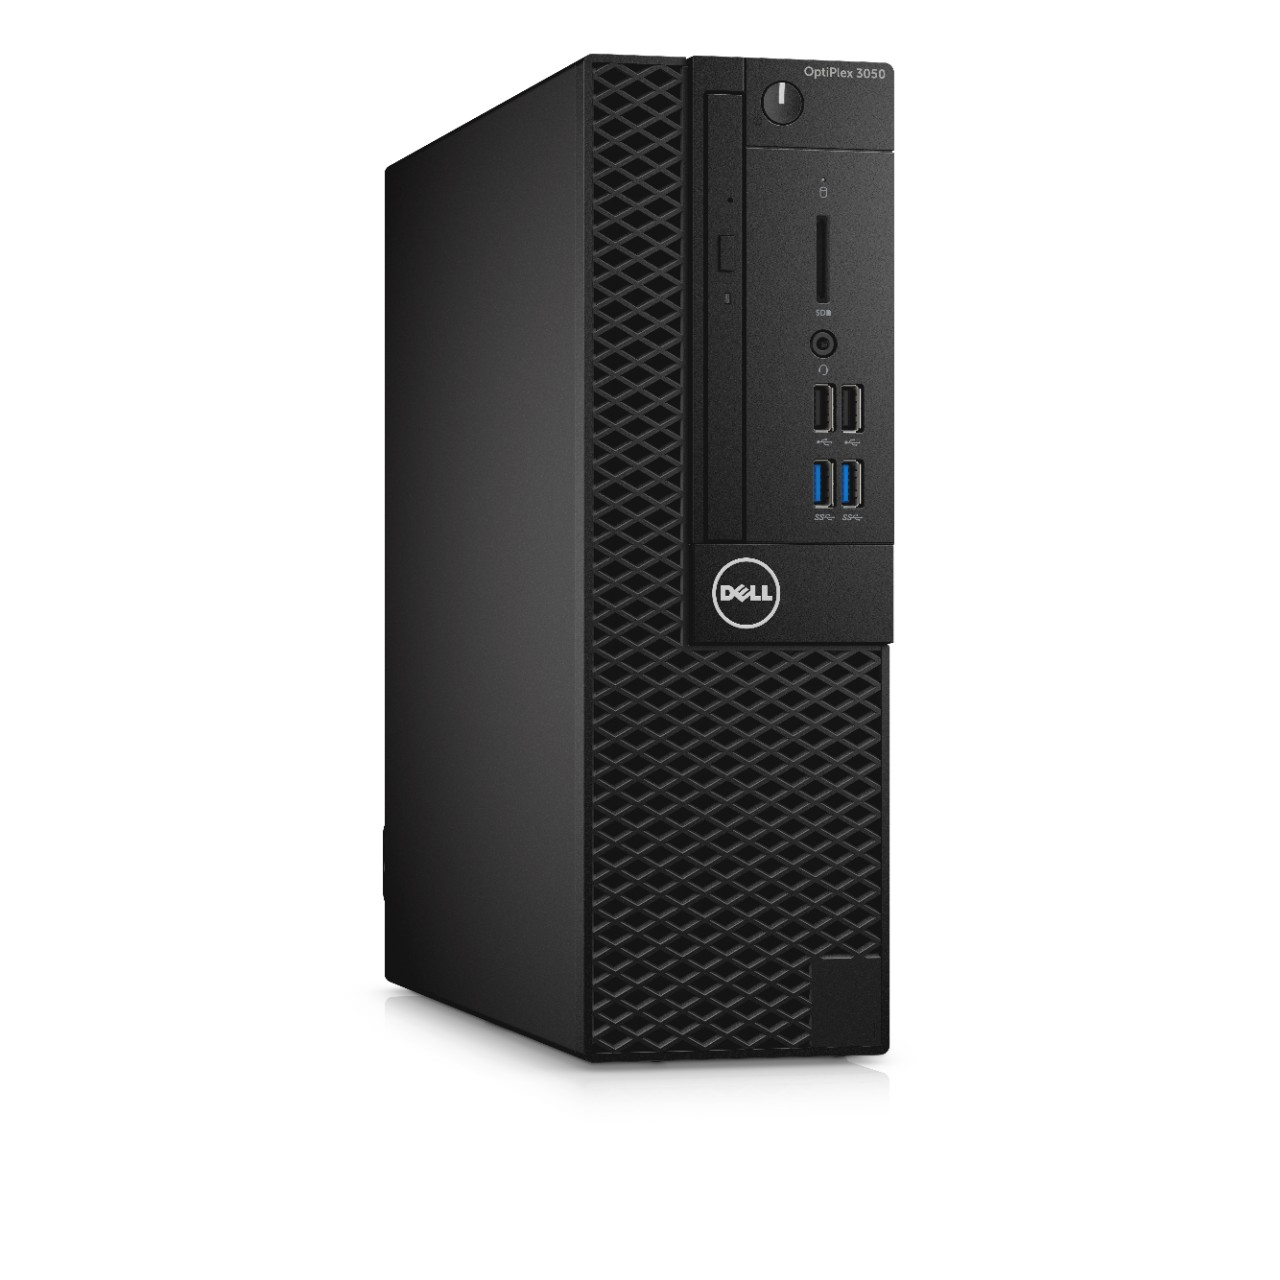 Dell PC Optiplex 3050 SF i5-6500/8G/256GB SSD/DP/HDMI/DVD RW/W10P(W7P)/3RNBD/Černý